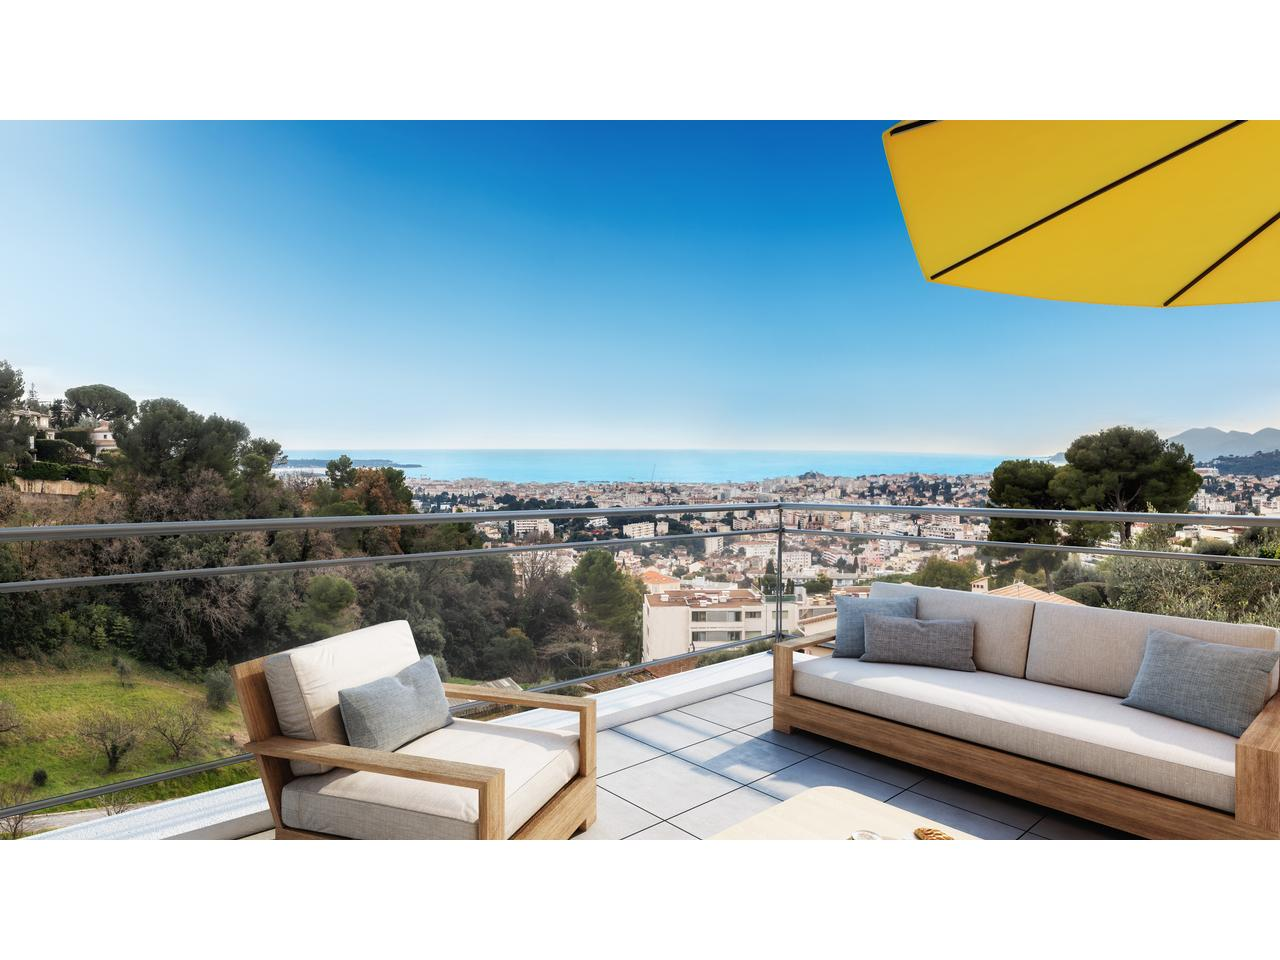 penthouse for sale new construction sea view canne